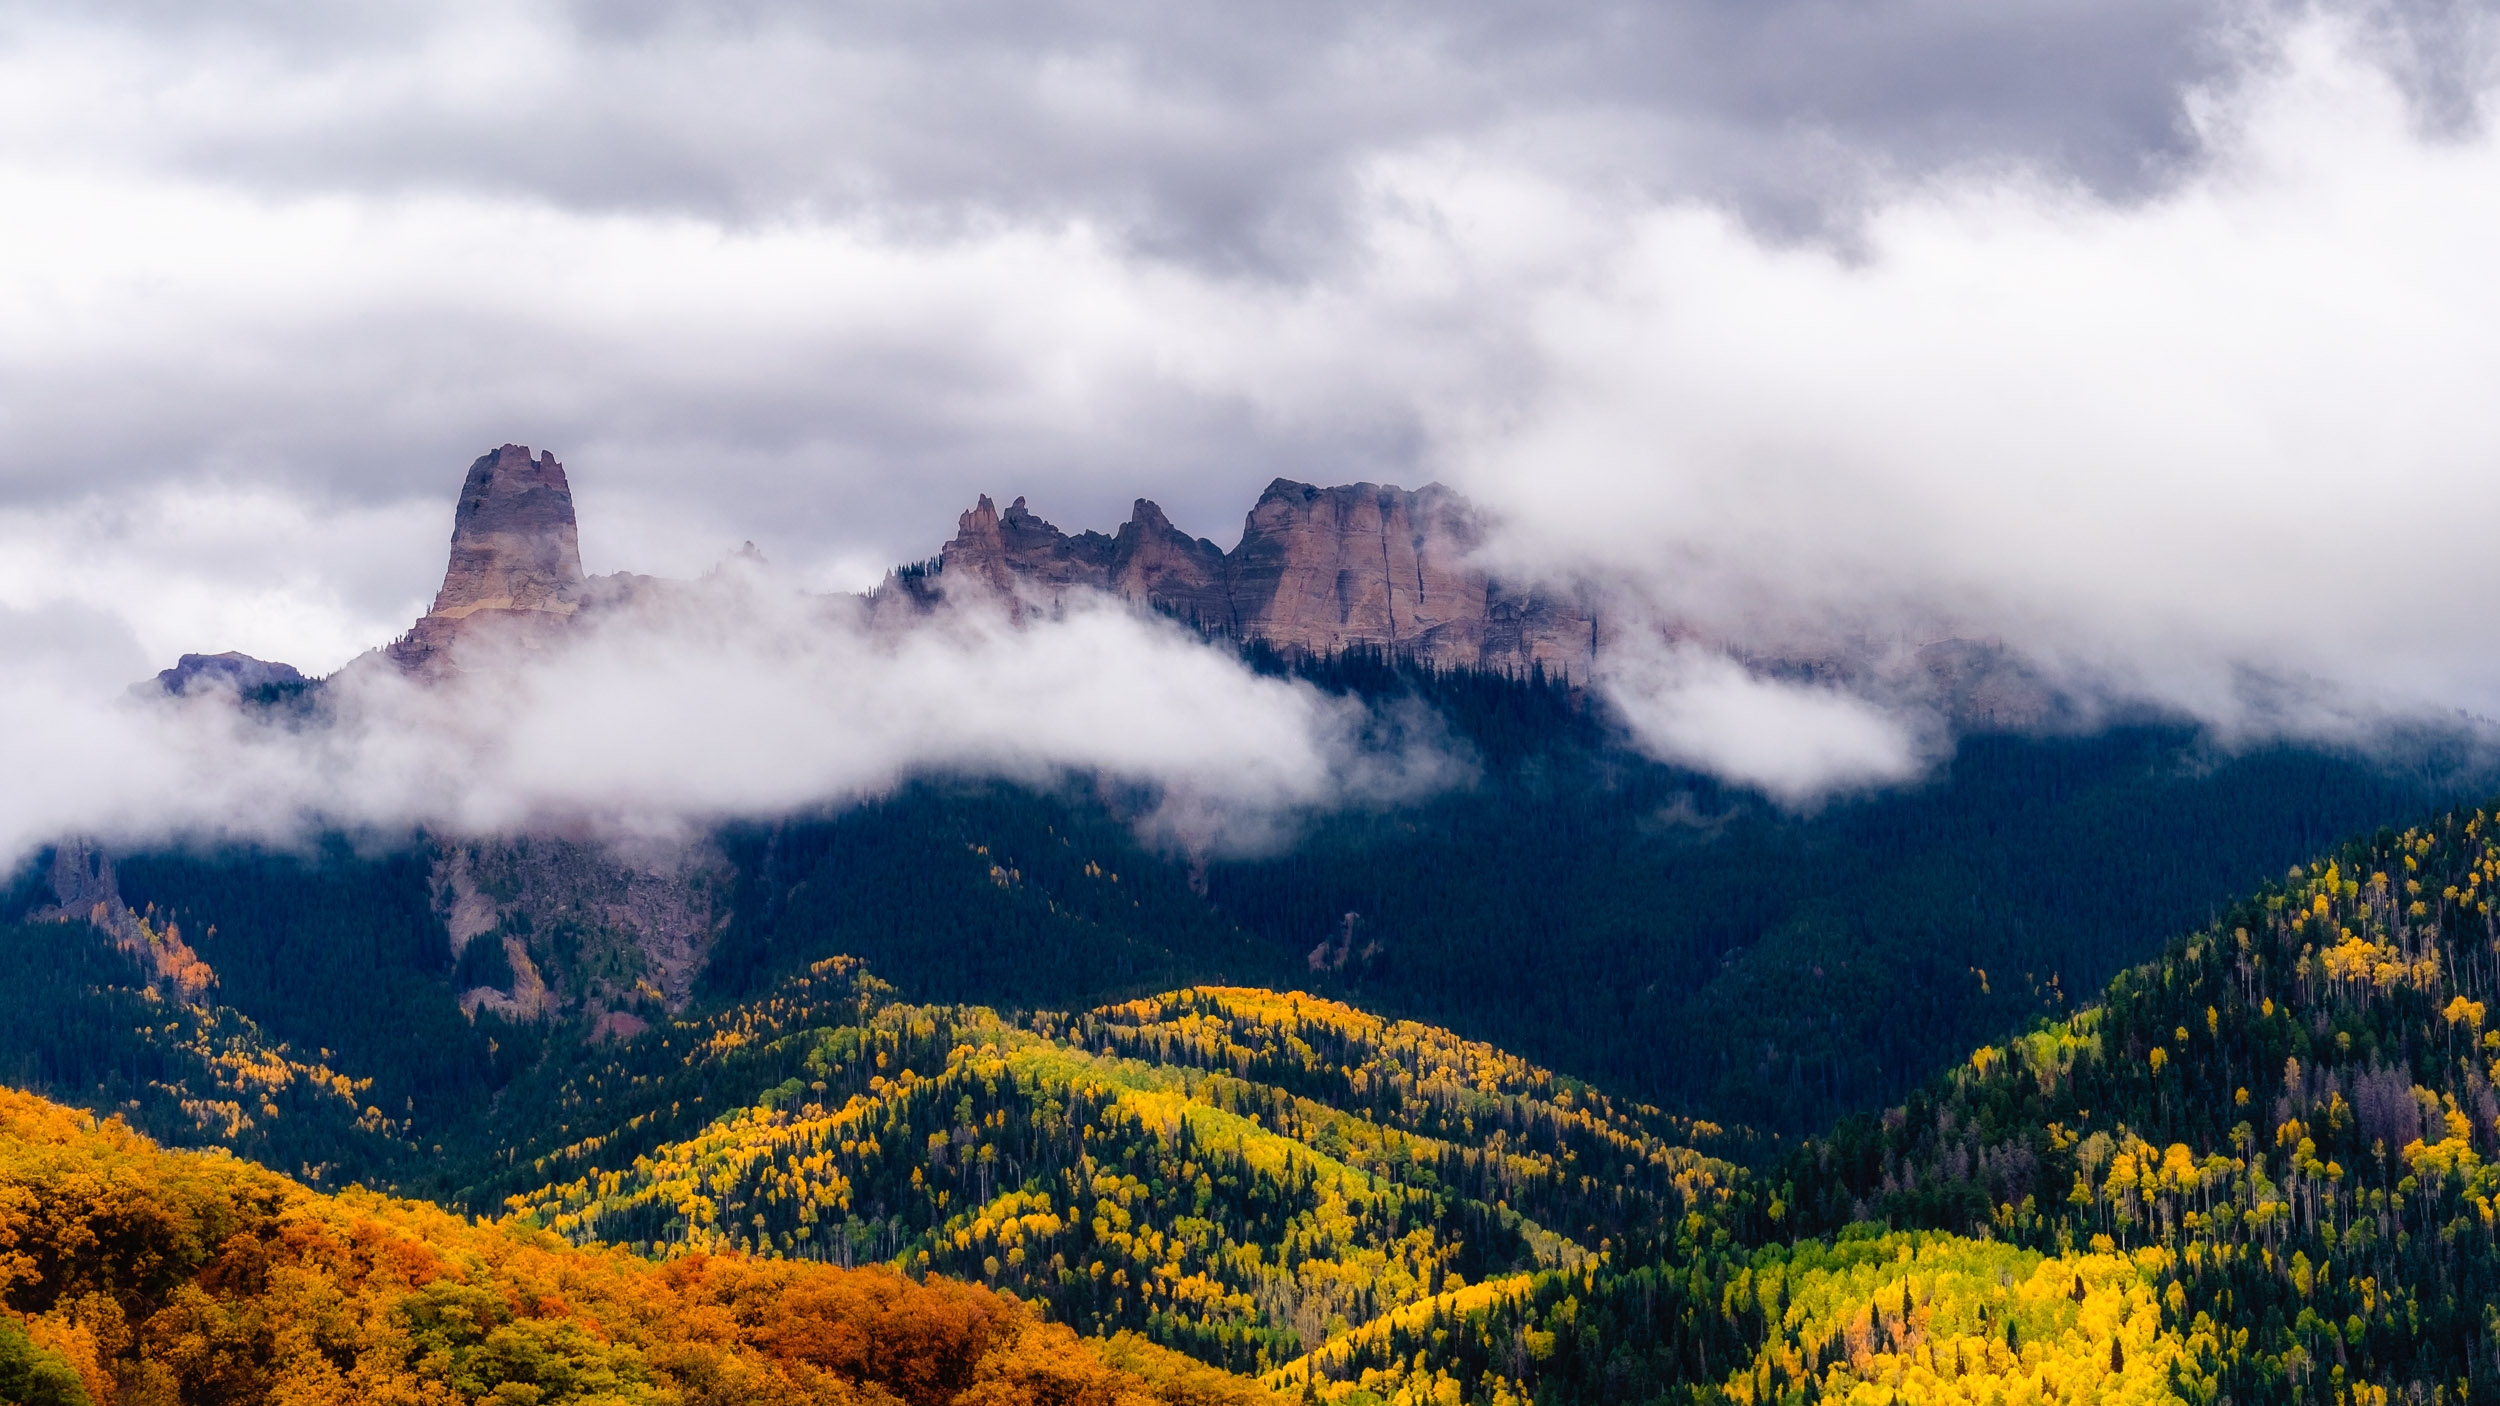 Storm clouds surround Chimney Rock and Courthouse Mountain along Owl Creek Pass in the Uncompahgre National Forest - Fuji XT2, XF 50-140mm f/2.8 @ 71.5mm